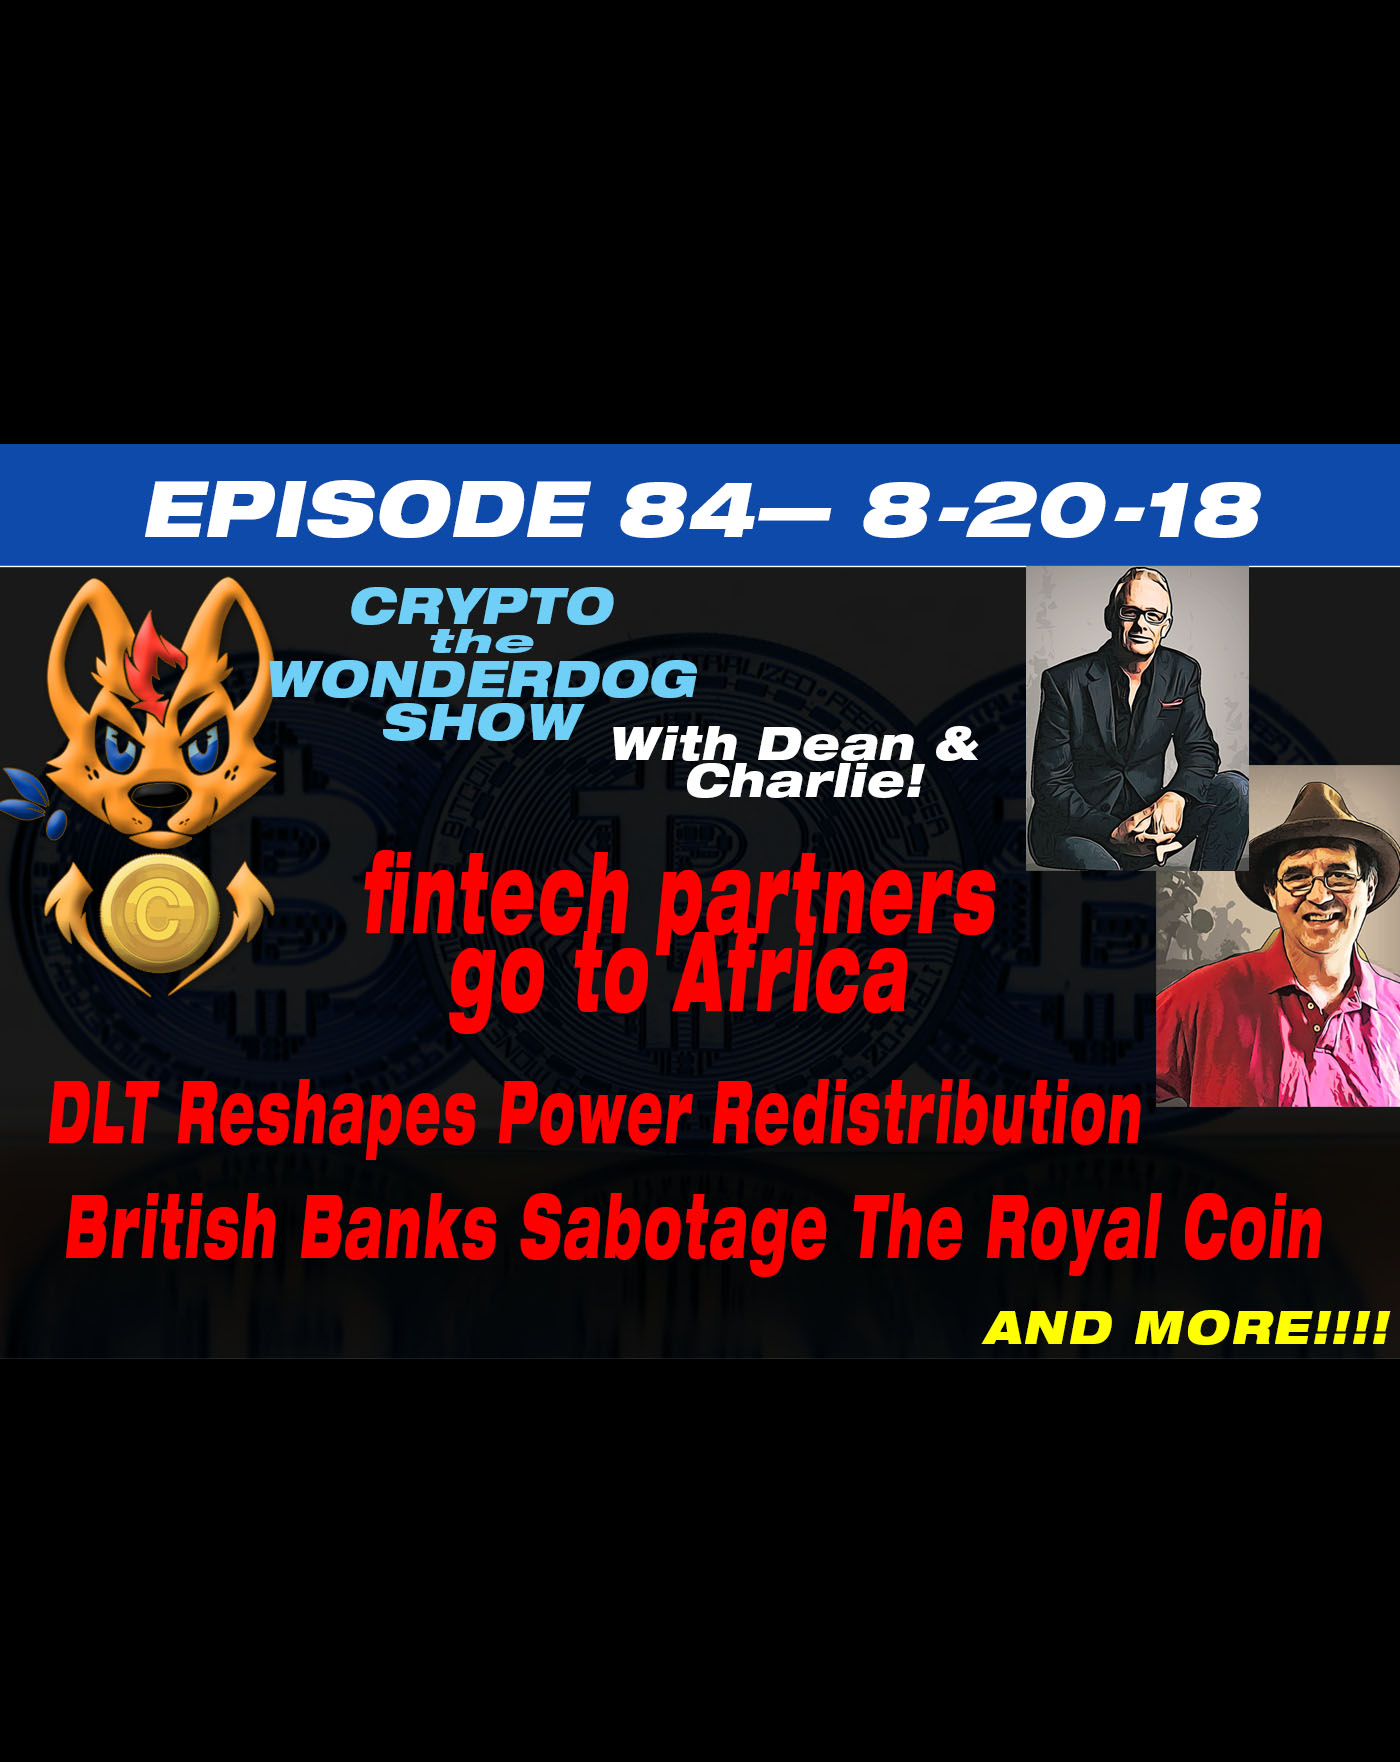 E 84 - Dean and Charlie - fintech in Africa, DLT Reshapes Power Industry, British Banks Sabotage Royal Coin